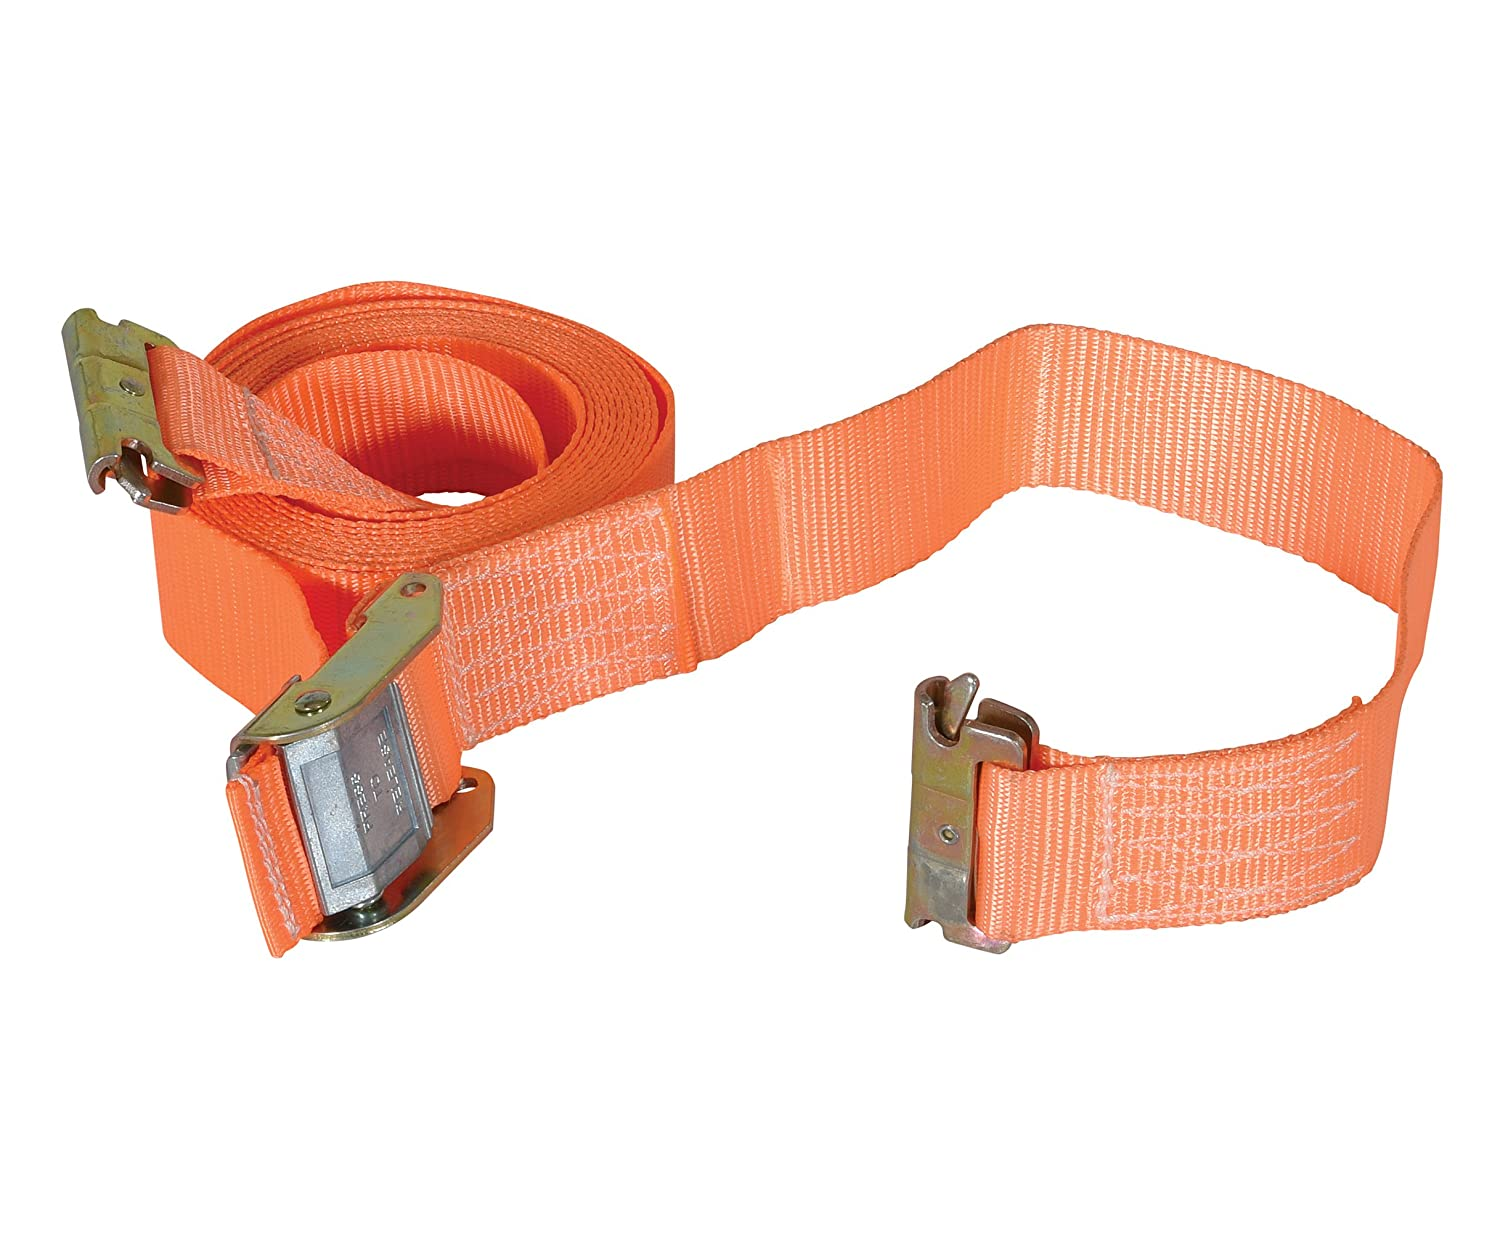 2 Width 16 Working Length 1200 lbs Capacity Vestil STRAP-16-CE Polyester E-Clip Cargo Strapping